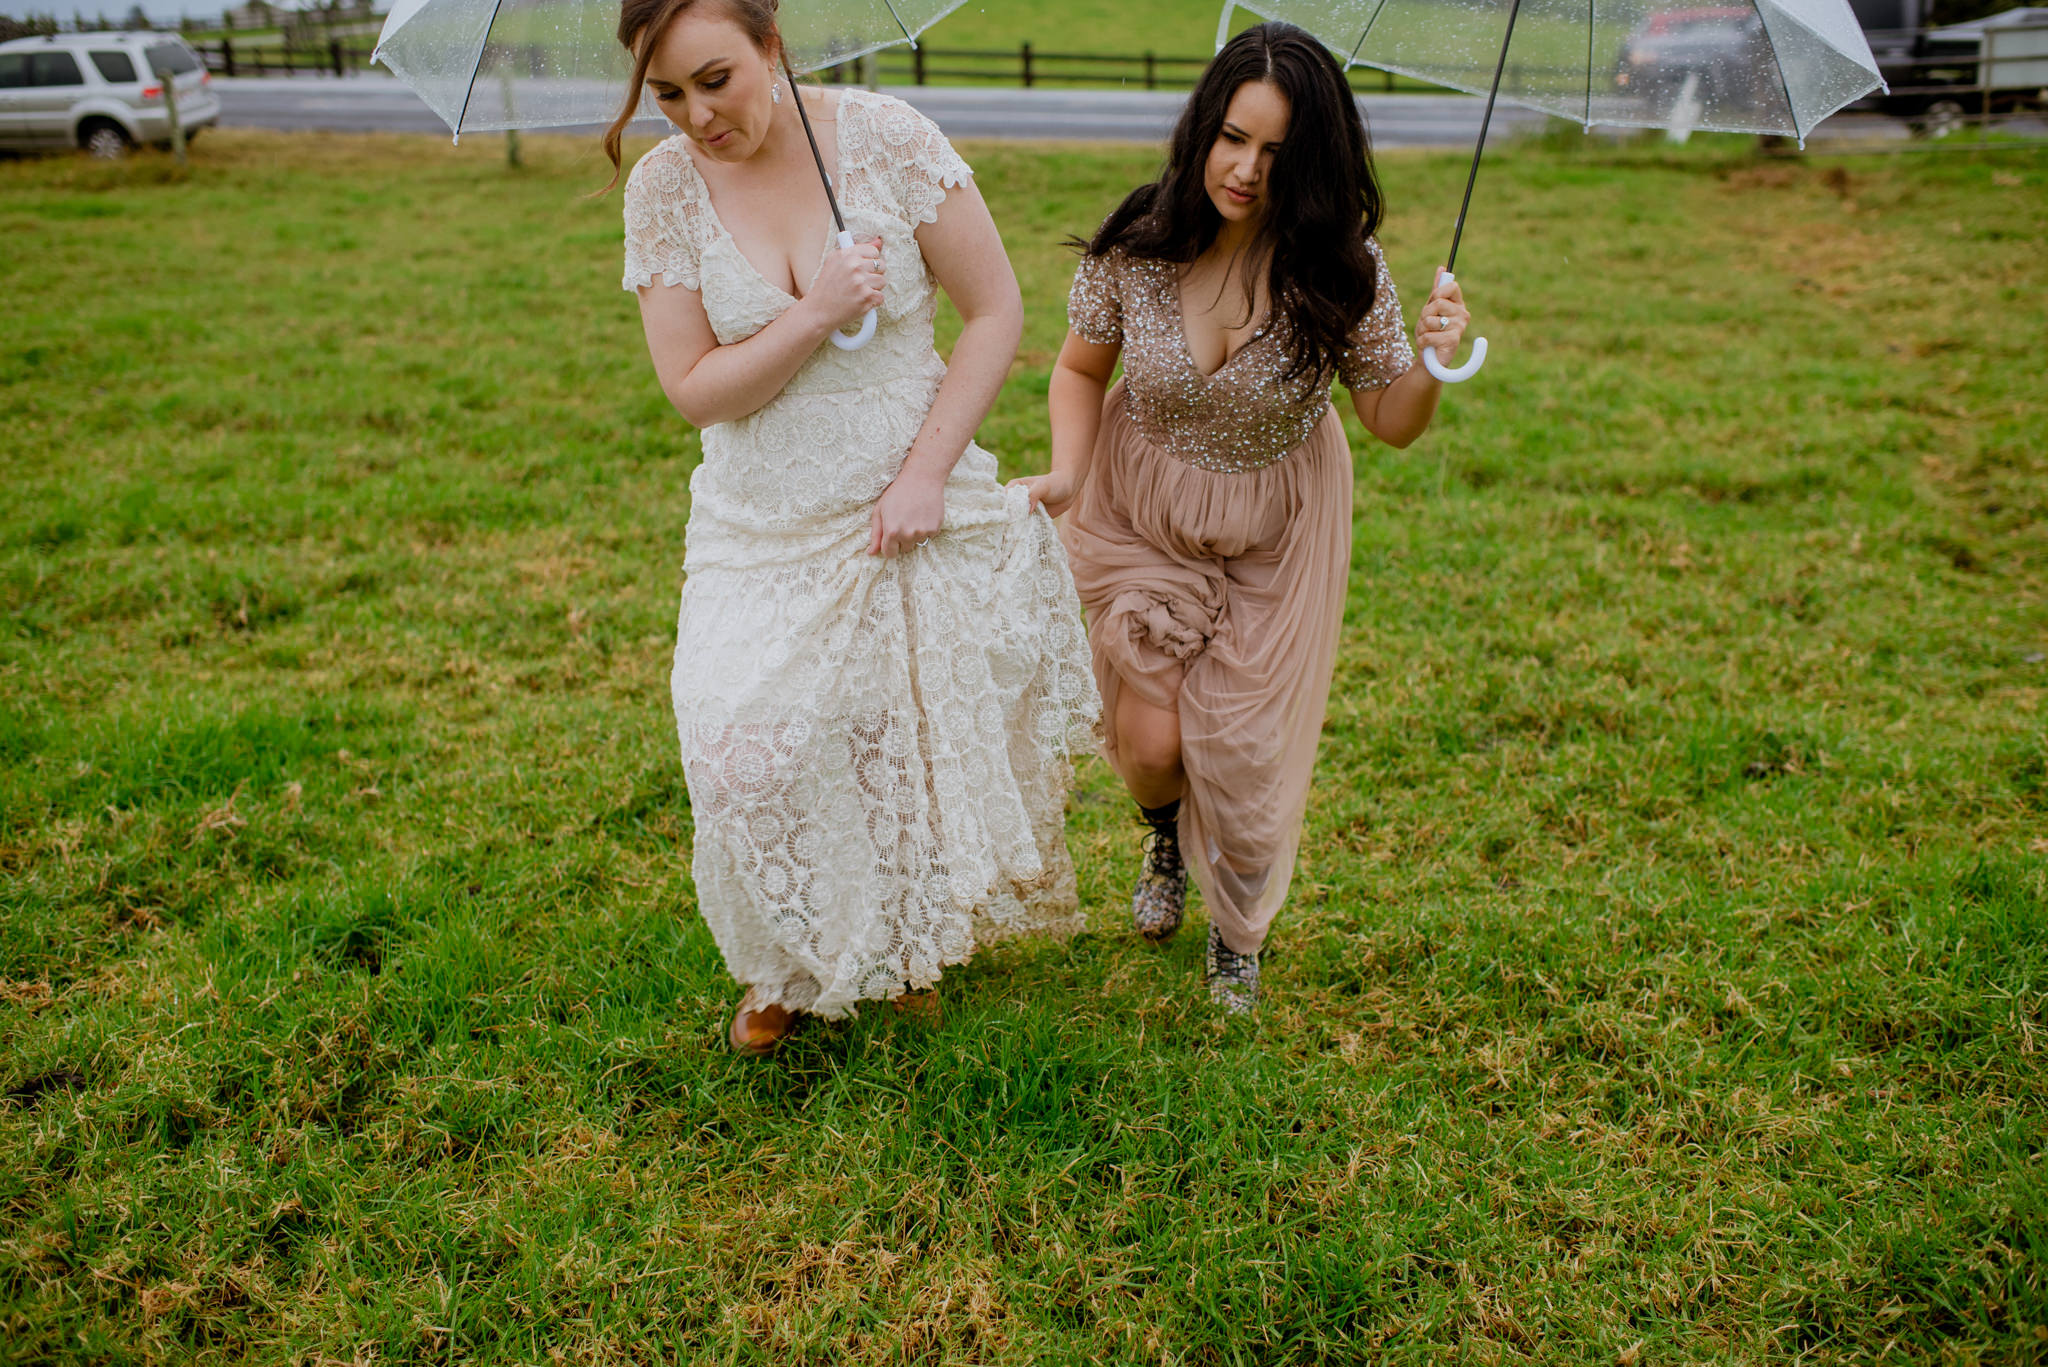 Two brides holding their dresses and umbrellas walking through wet grass in Maleny